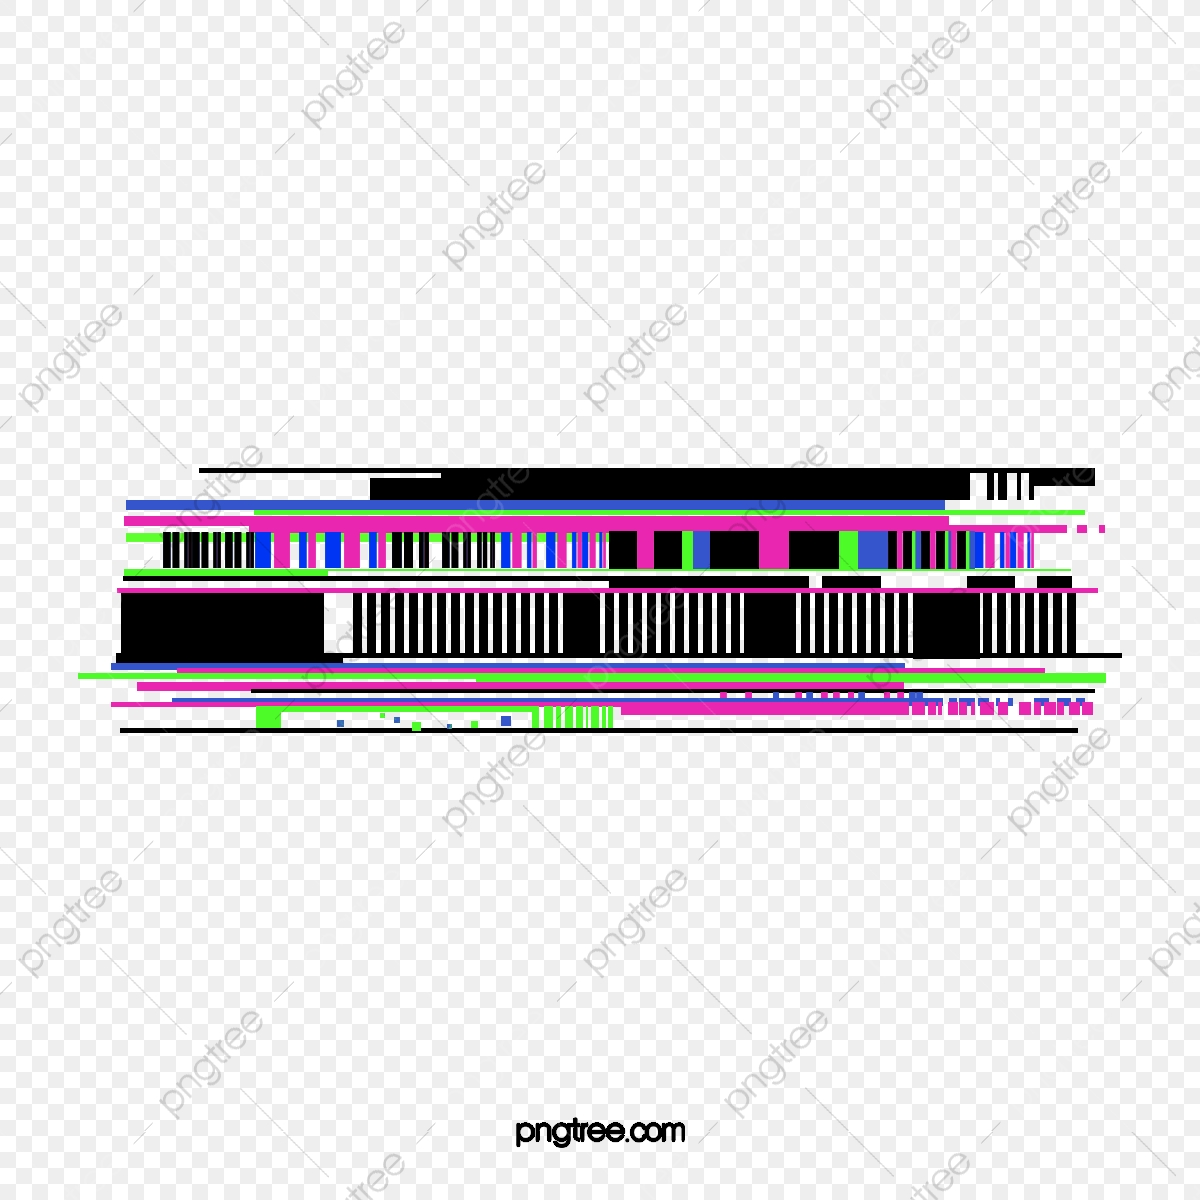 Fault Style Shows Error Text Border Glitch Display Error Weak Signal Png Transparent Clipart Image And Psd File For Free Download